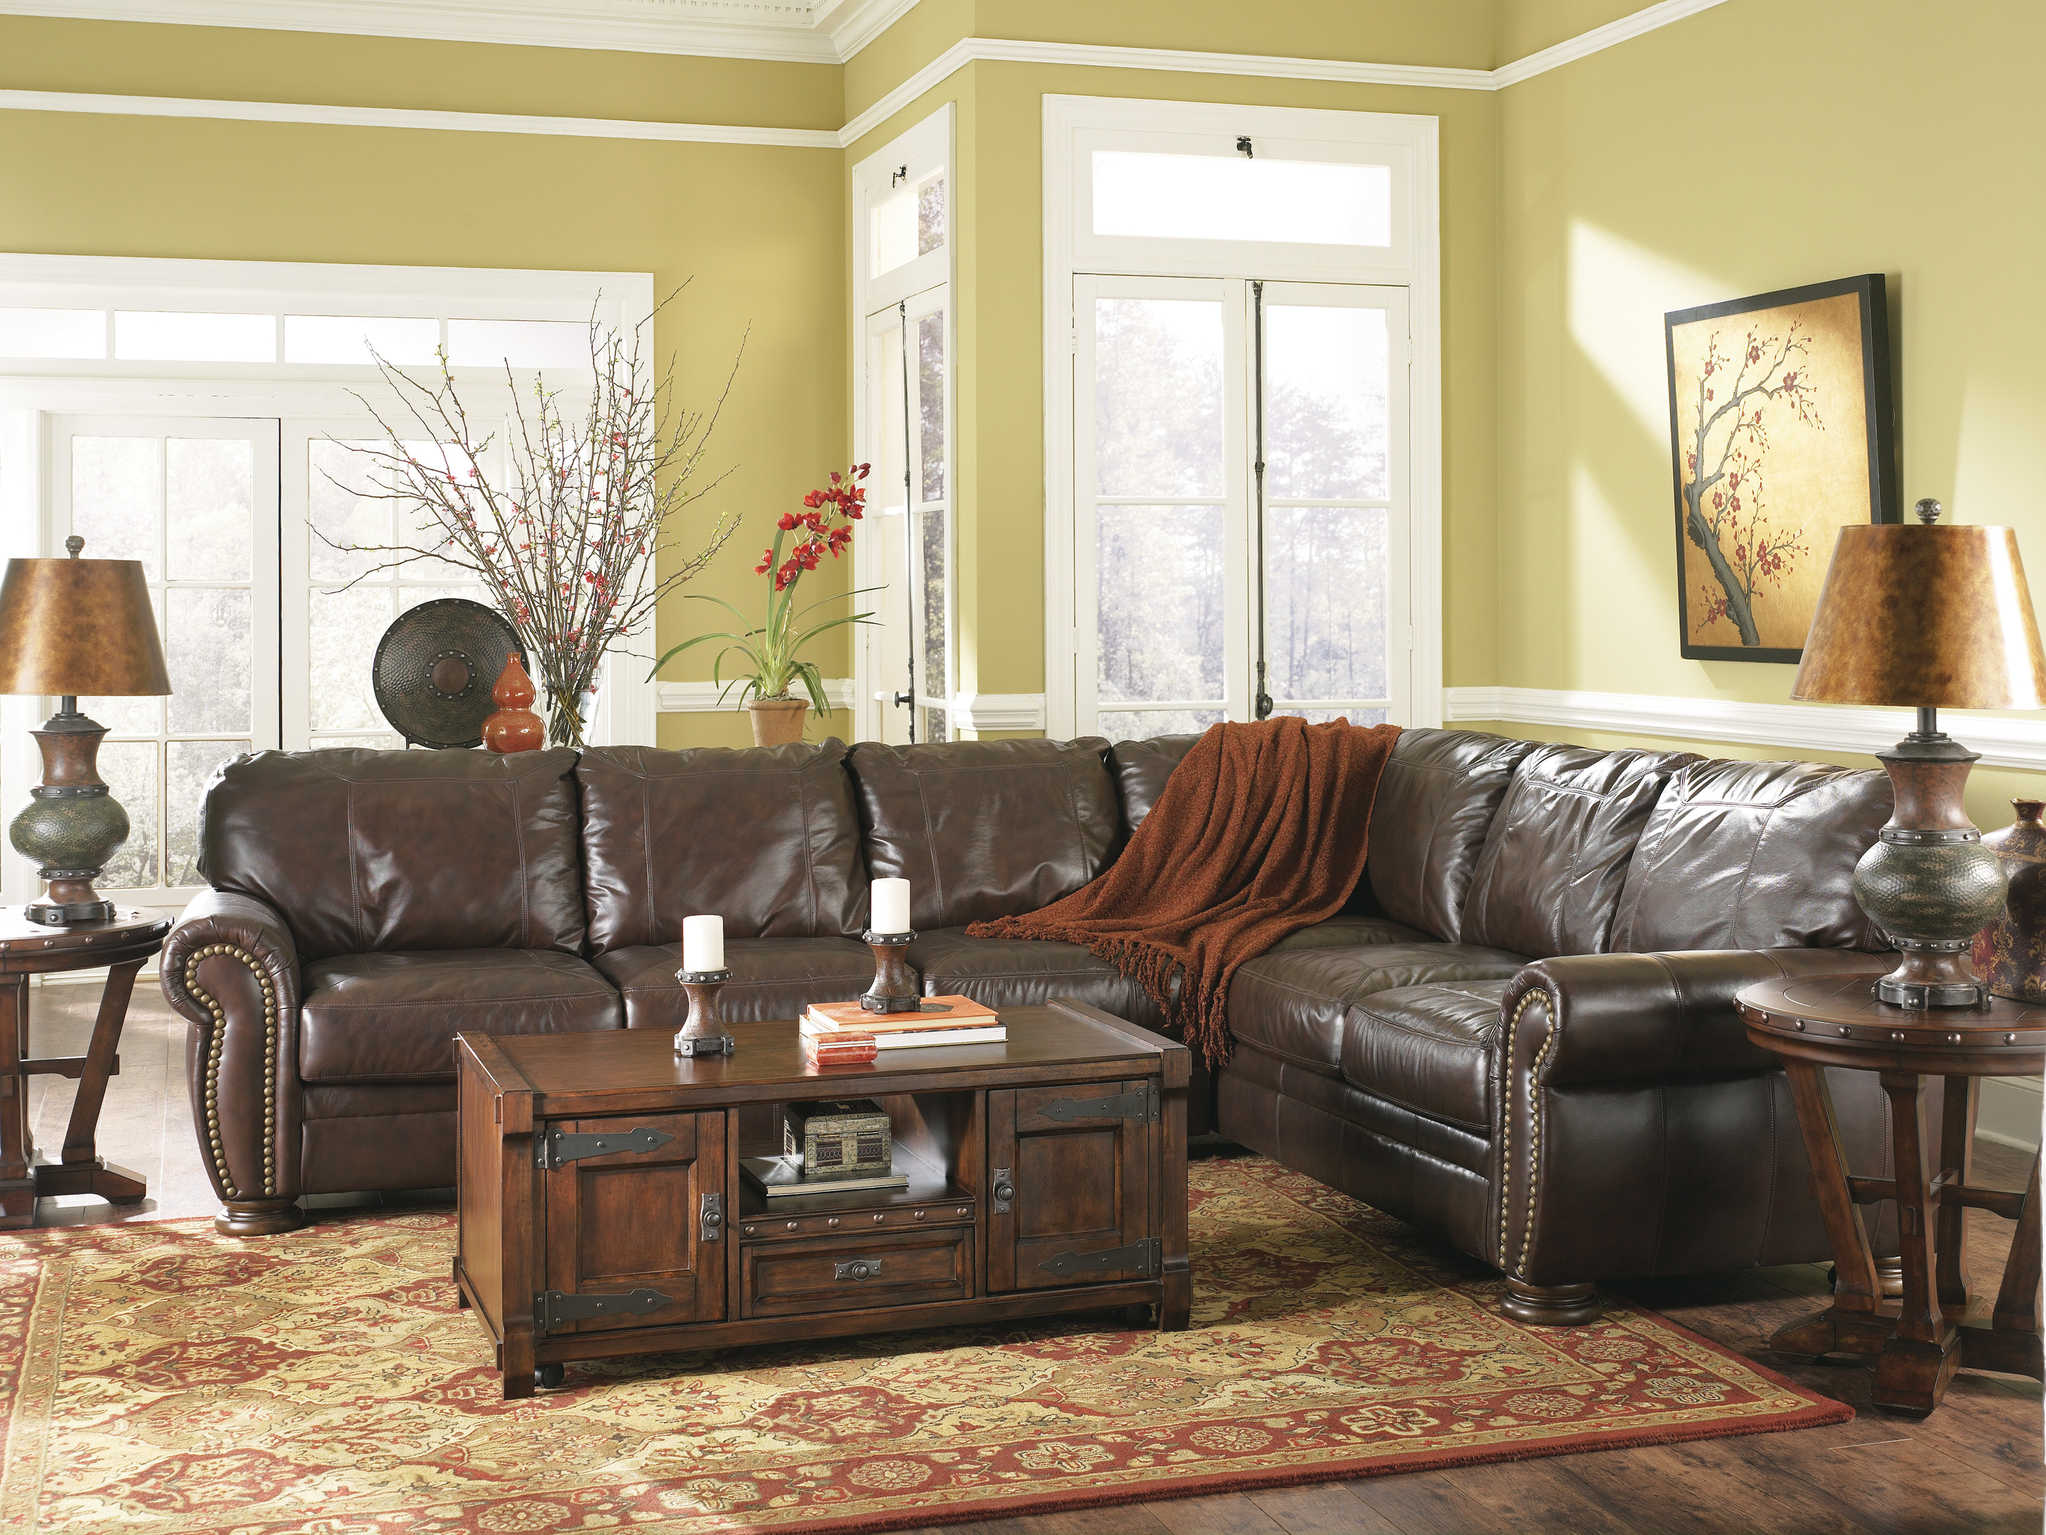 Living room leather sofa designs - Living Room L Shape Sofa Brown Wooden Coffee Table Rugs Floor Furniture Leather Couches